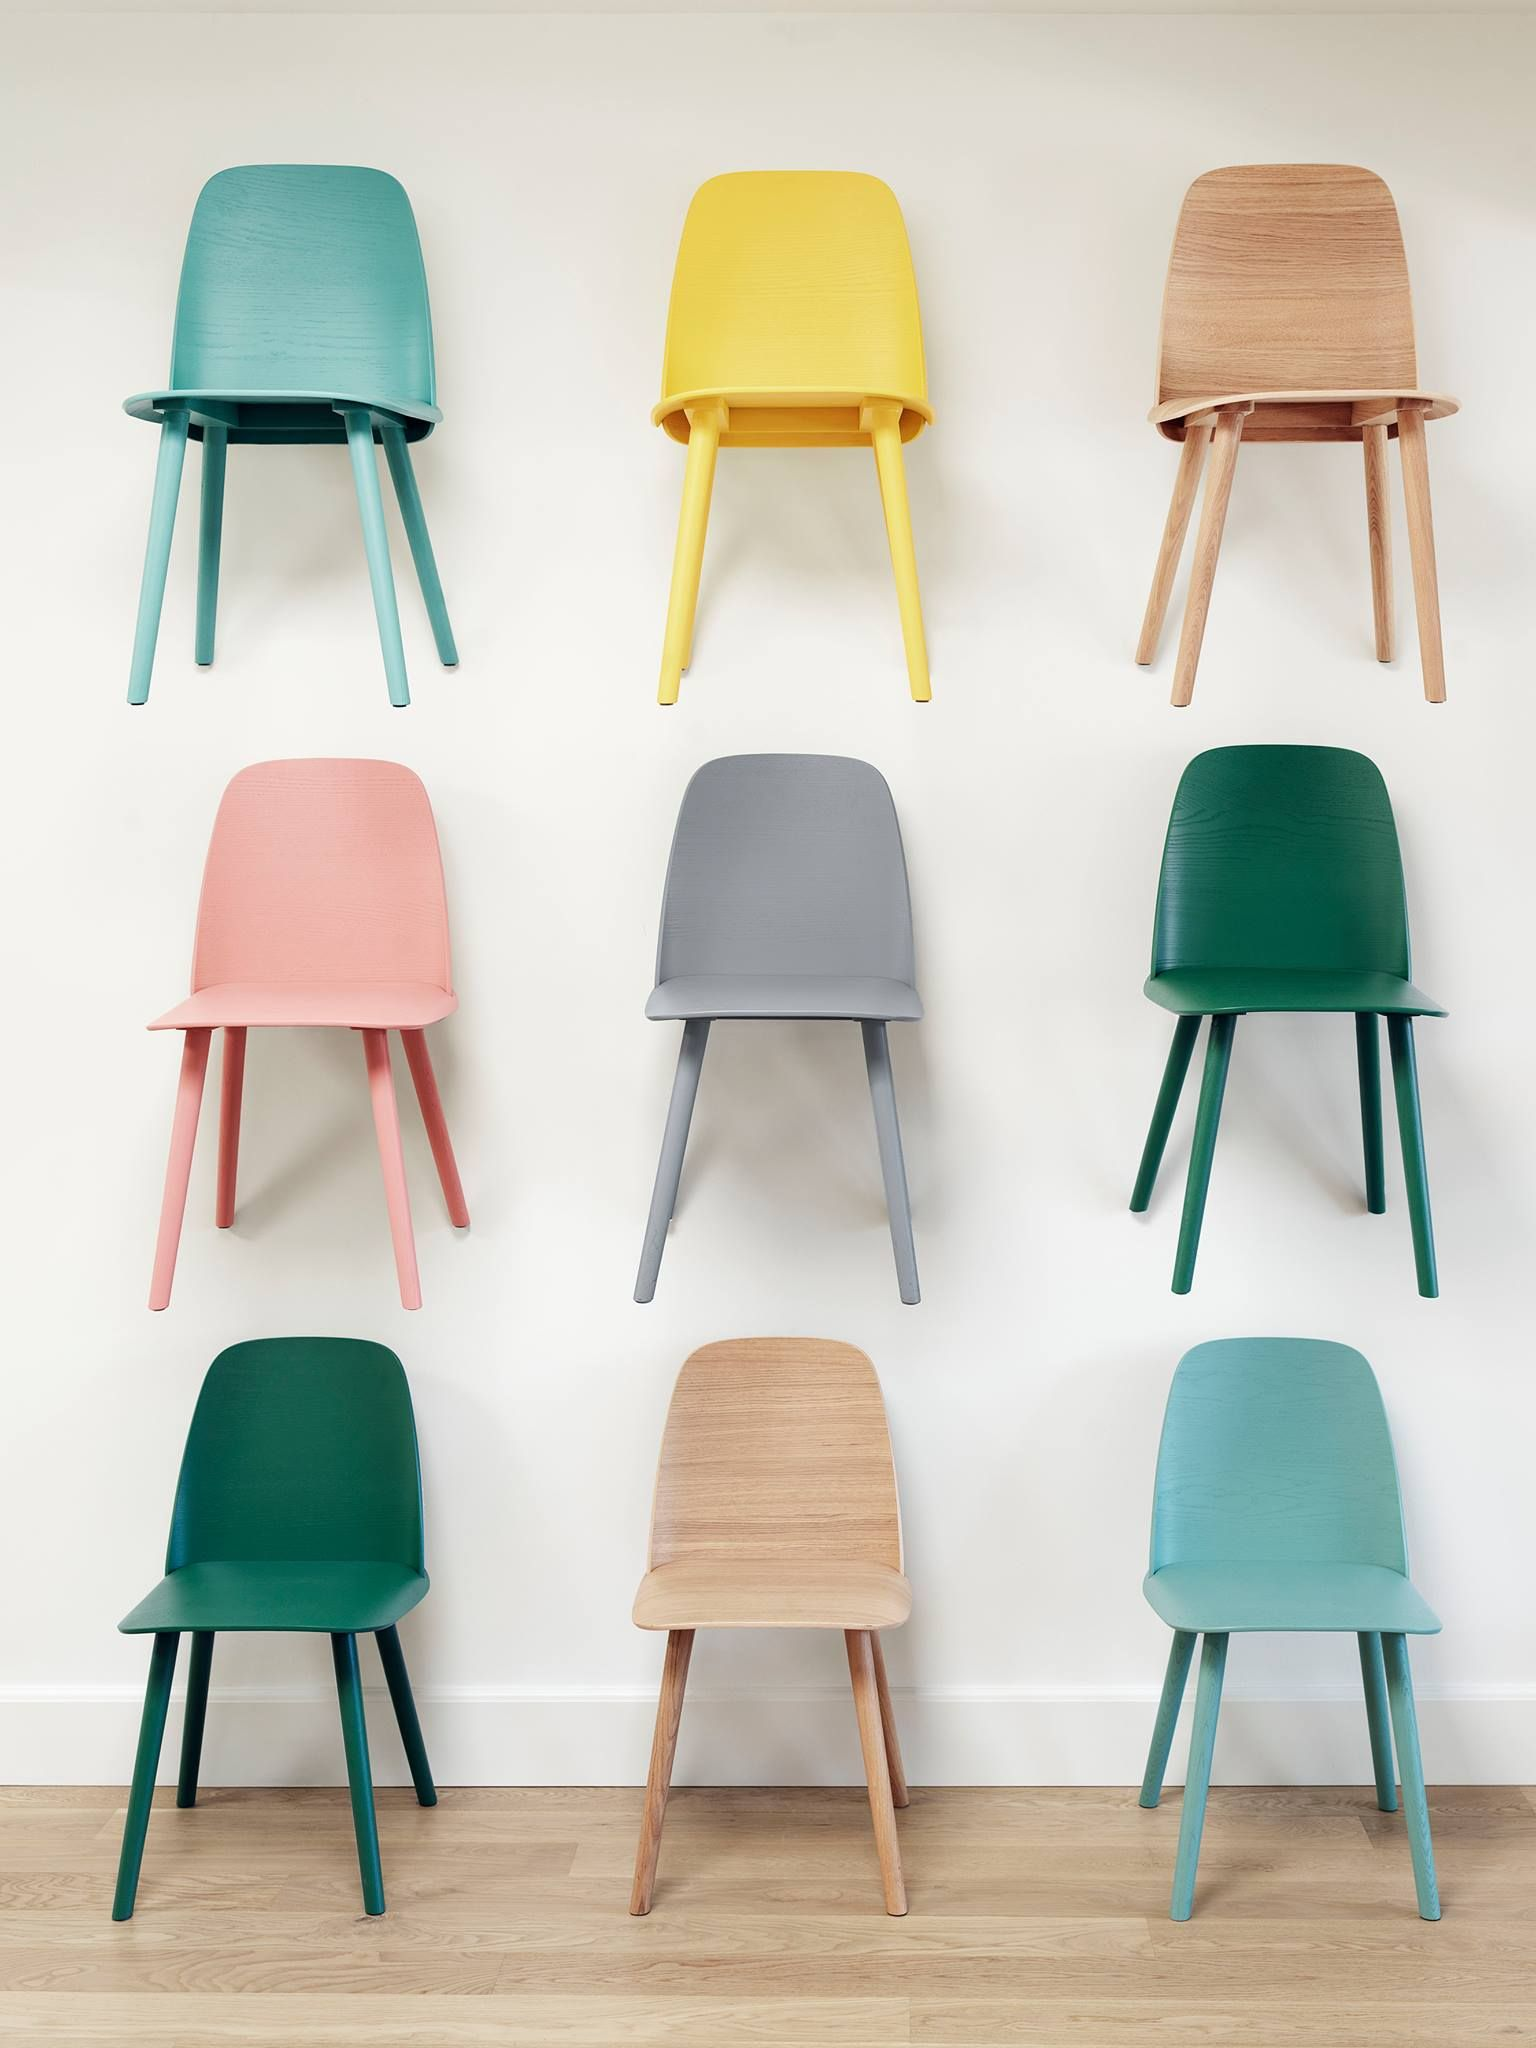 Nerd Chair is an iconic and characteristic chair designed by David Geckeler for Muuto Get